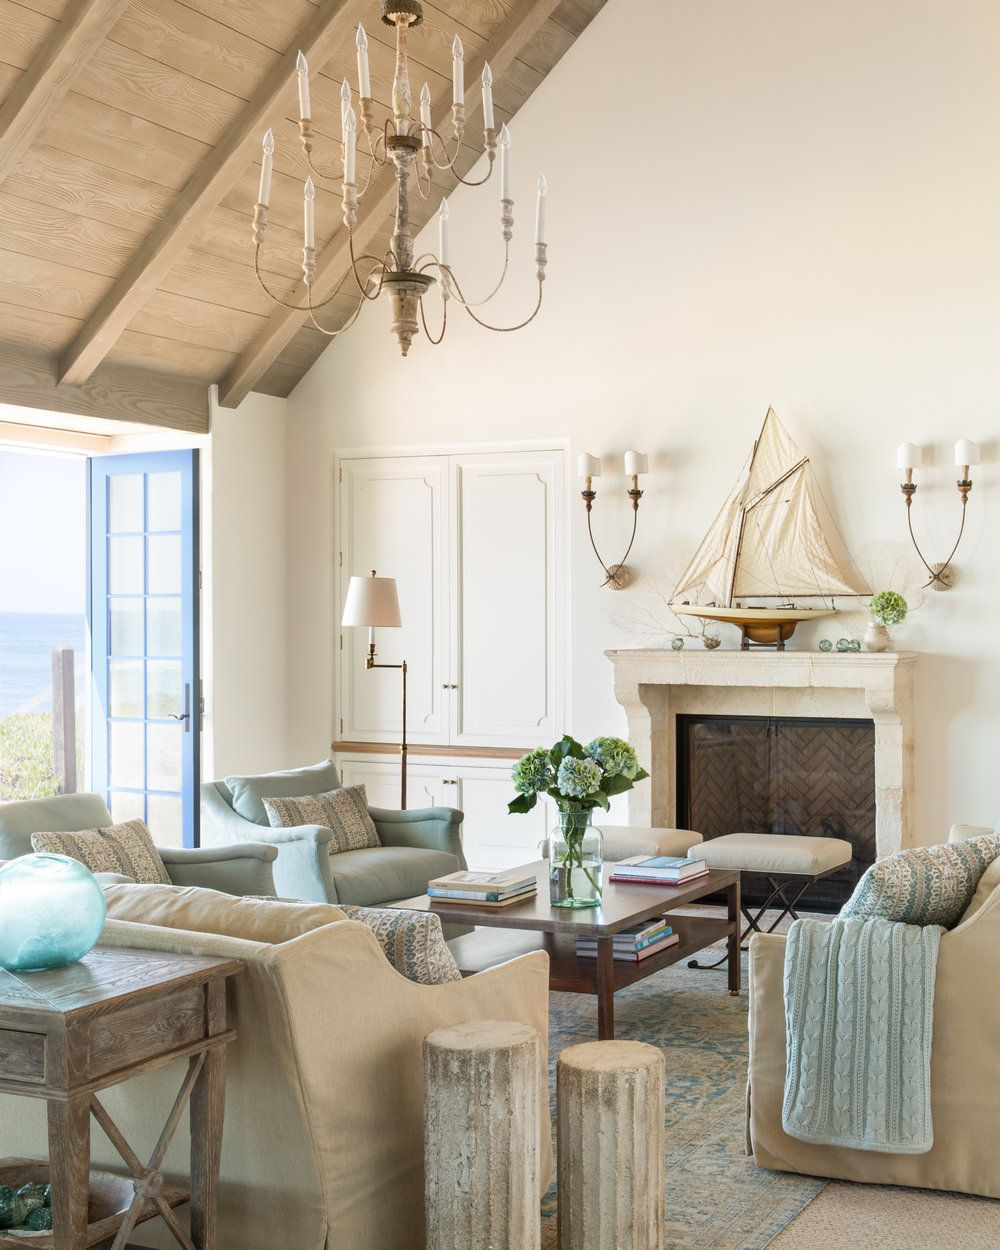 French Country Style Interior Design In Beautiful Beach House By Giannetti Home Found On Hello Lovely Studio